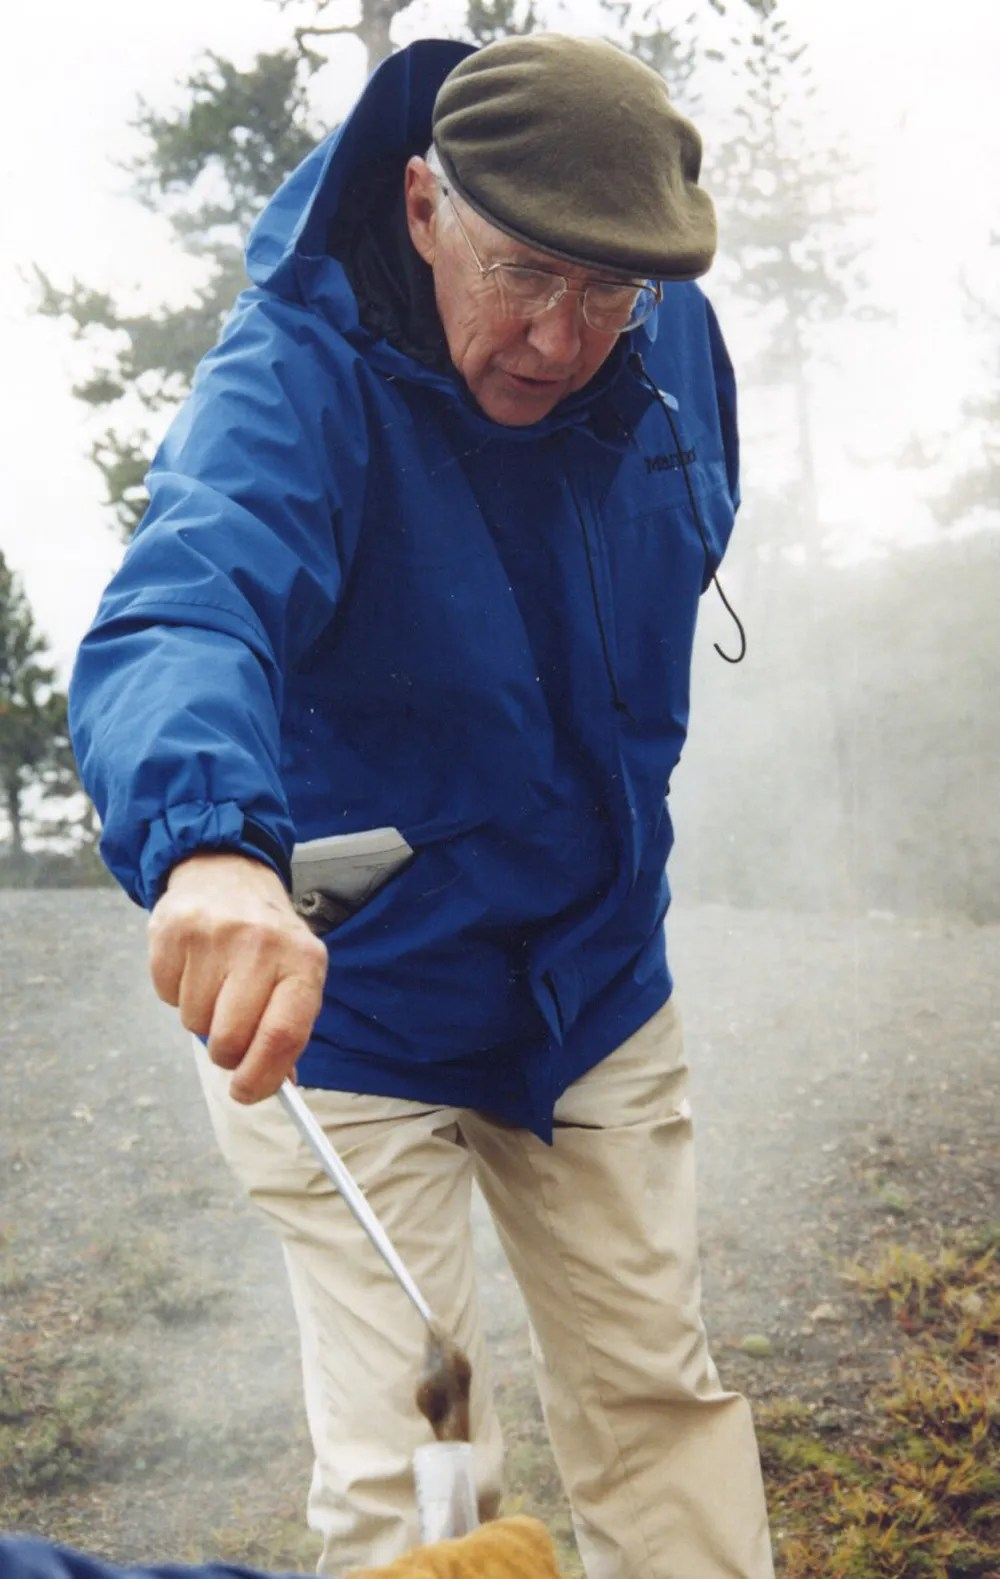 Tom Brock collects a sample from a hot spring in Yellowstone National Park in 1995. A pioneer in his field, Brock's discovery of bacteria that can live at extremely high temperatures led to major advances in biology and medicine, including including the technology used in COVID -19 PCR tests.